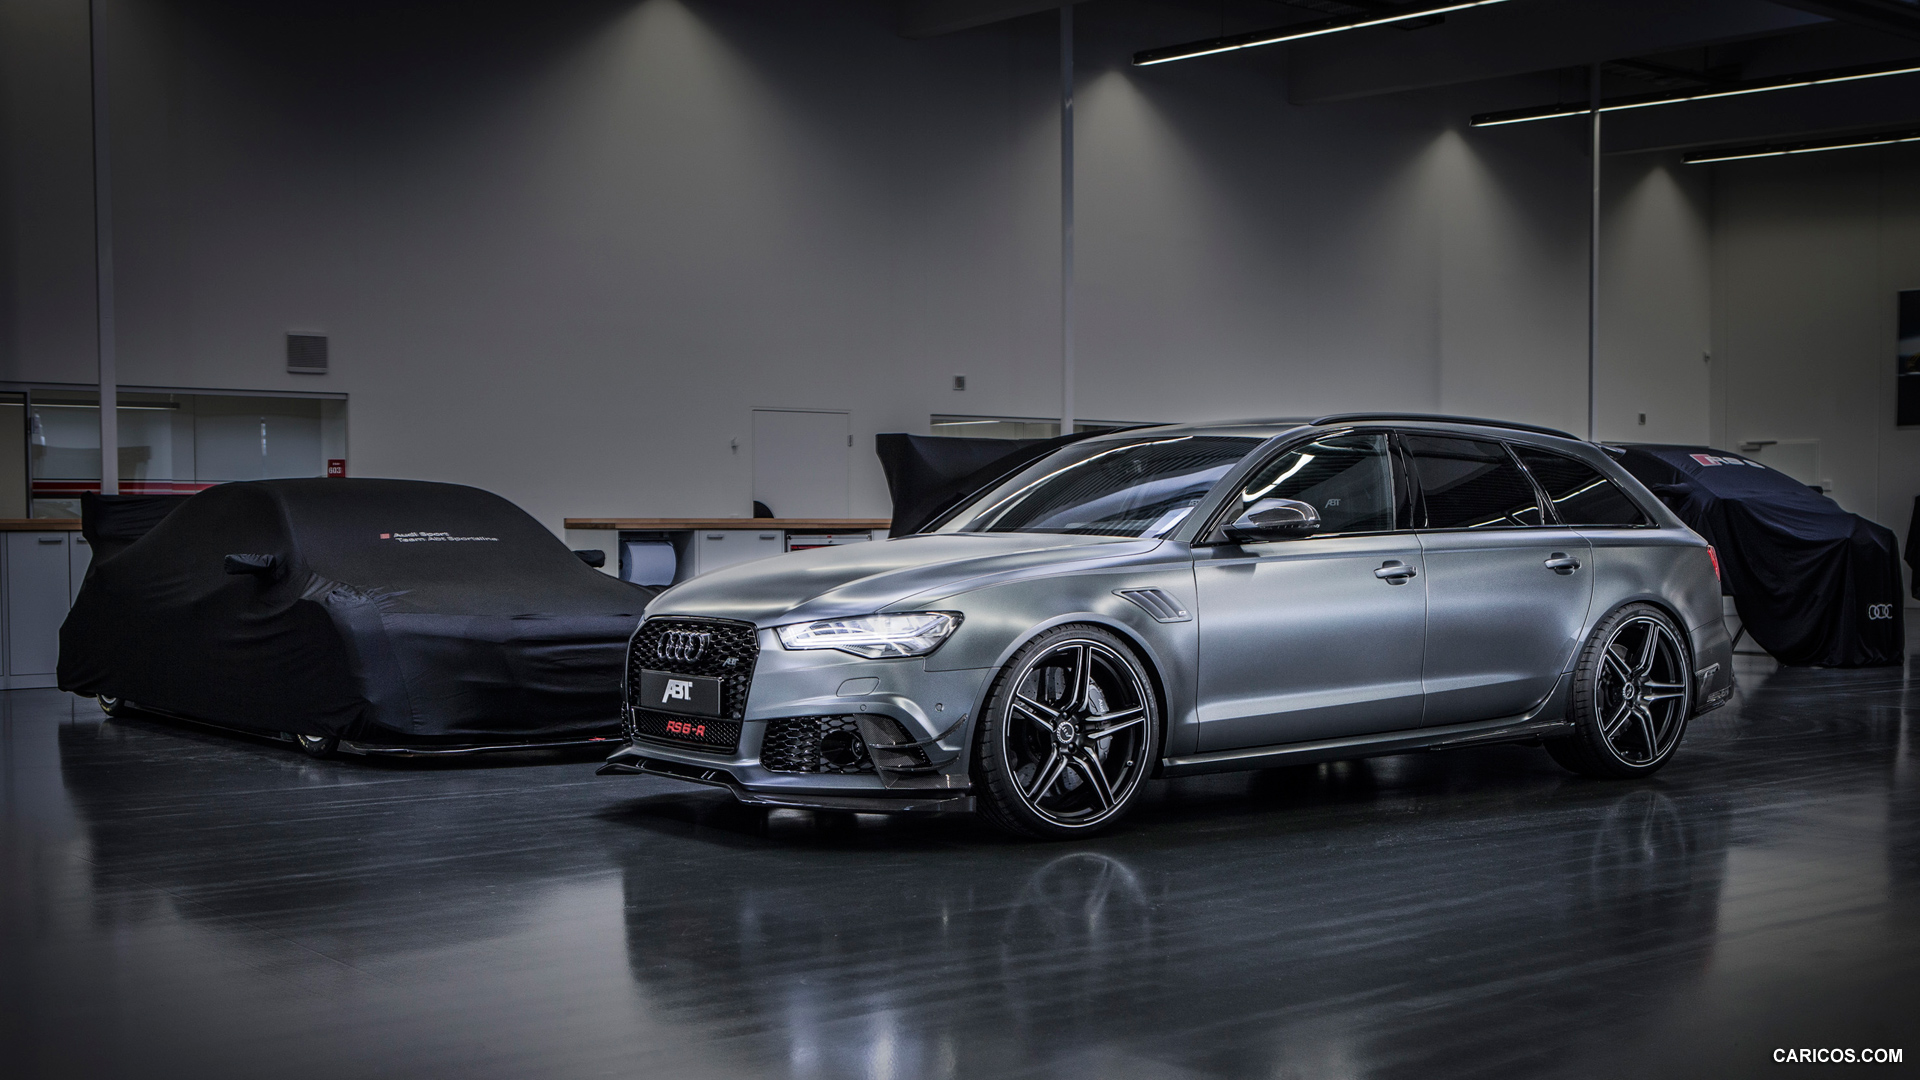 1920x1080 - Audi RS6 Wallpapers 13